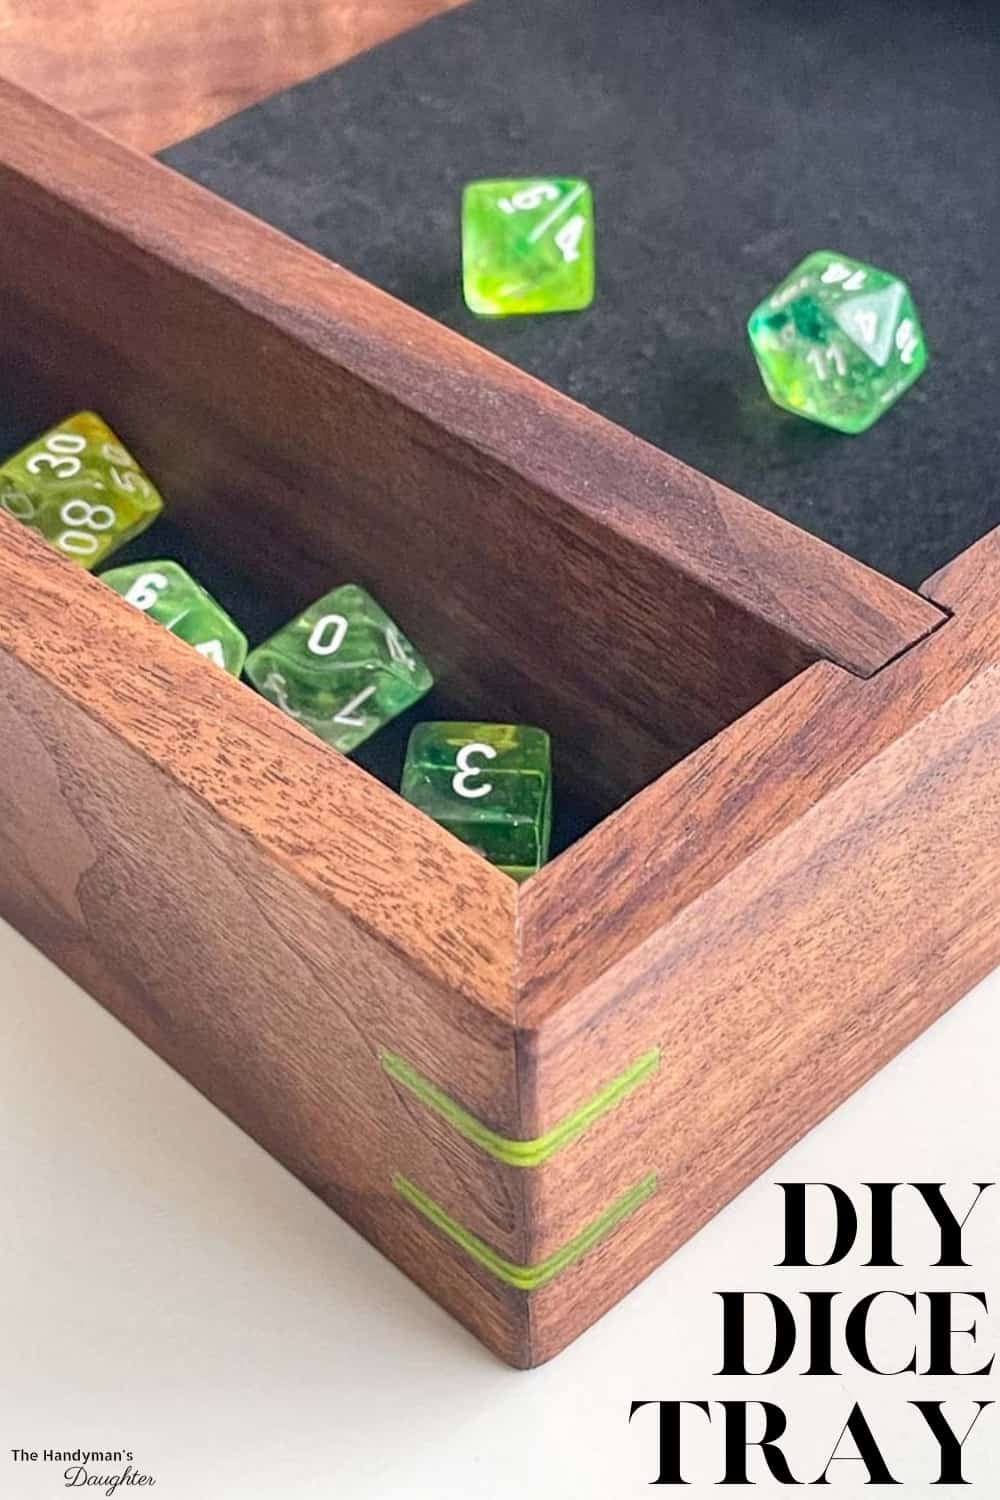 corner view of DIY dice tray with text overlay